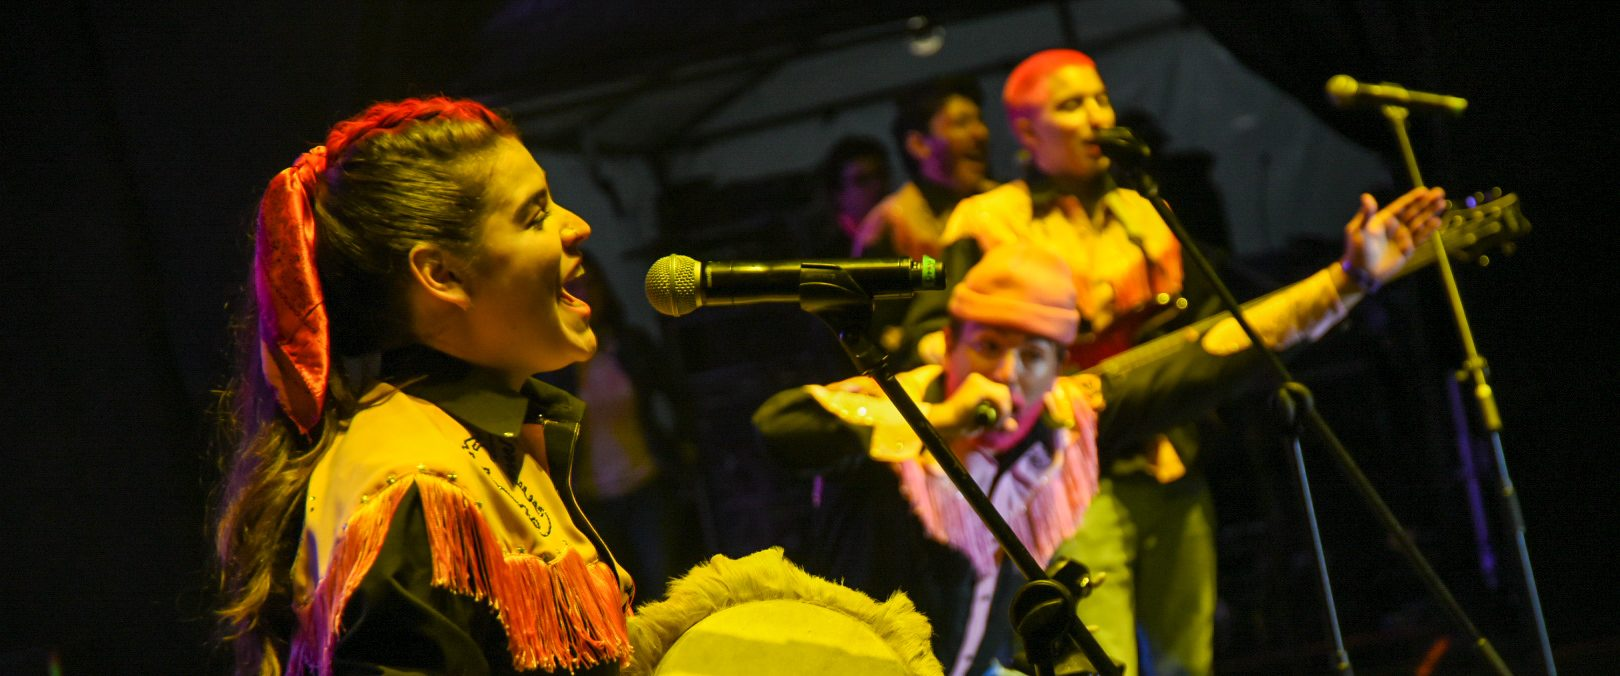 Colombia's Hermoso Ruido Festival Is a Jam-Packed Three Days of Up-and-Coming Acts